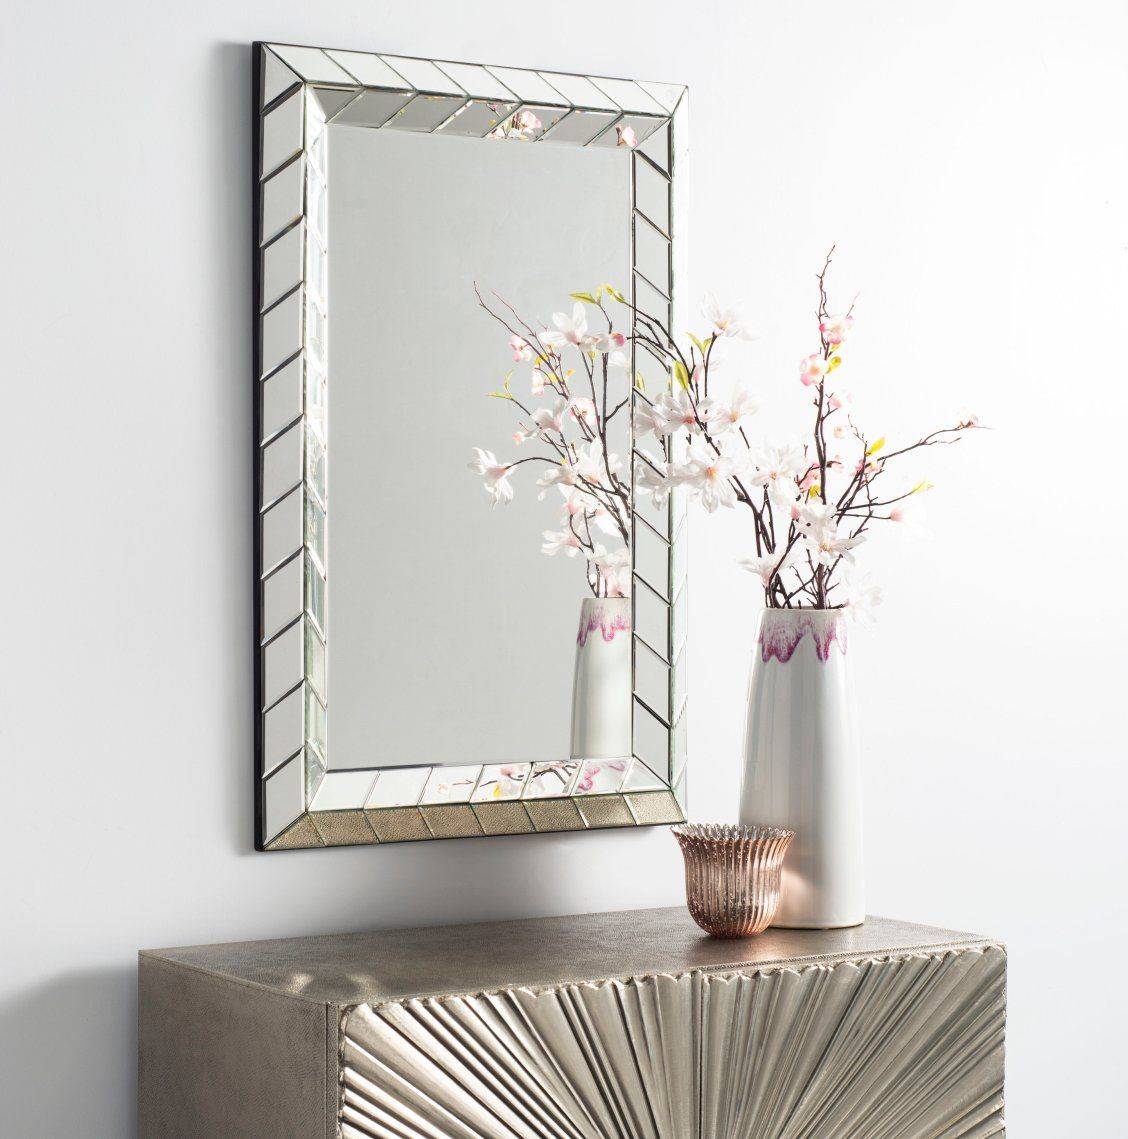 Inspired By The Sleek Art Deco Style This Contemporary Silver Mirror Is A New Classic Its Arrow Border Design Blends S Trending Decor Decor Traditional Decor #silver #mirror #for #living #room